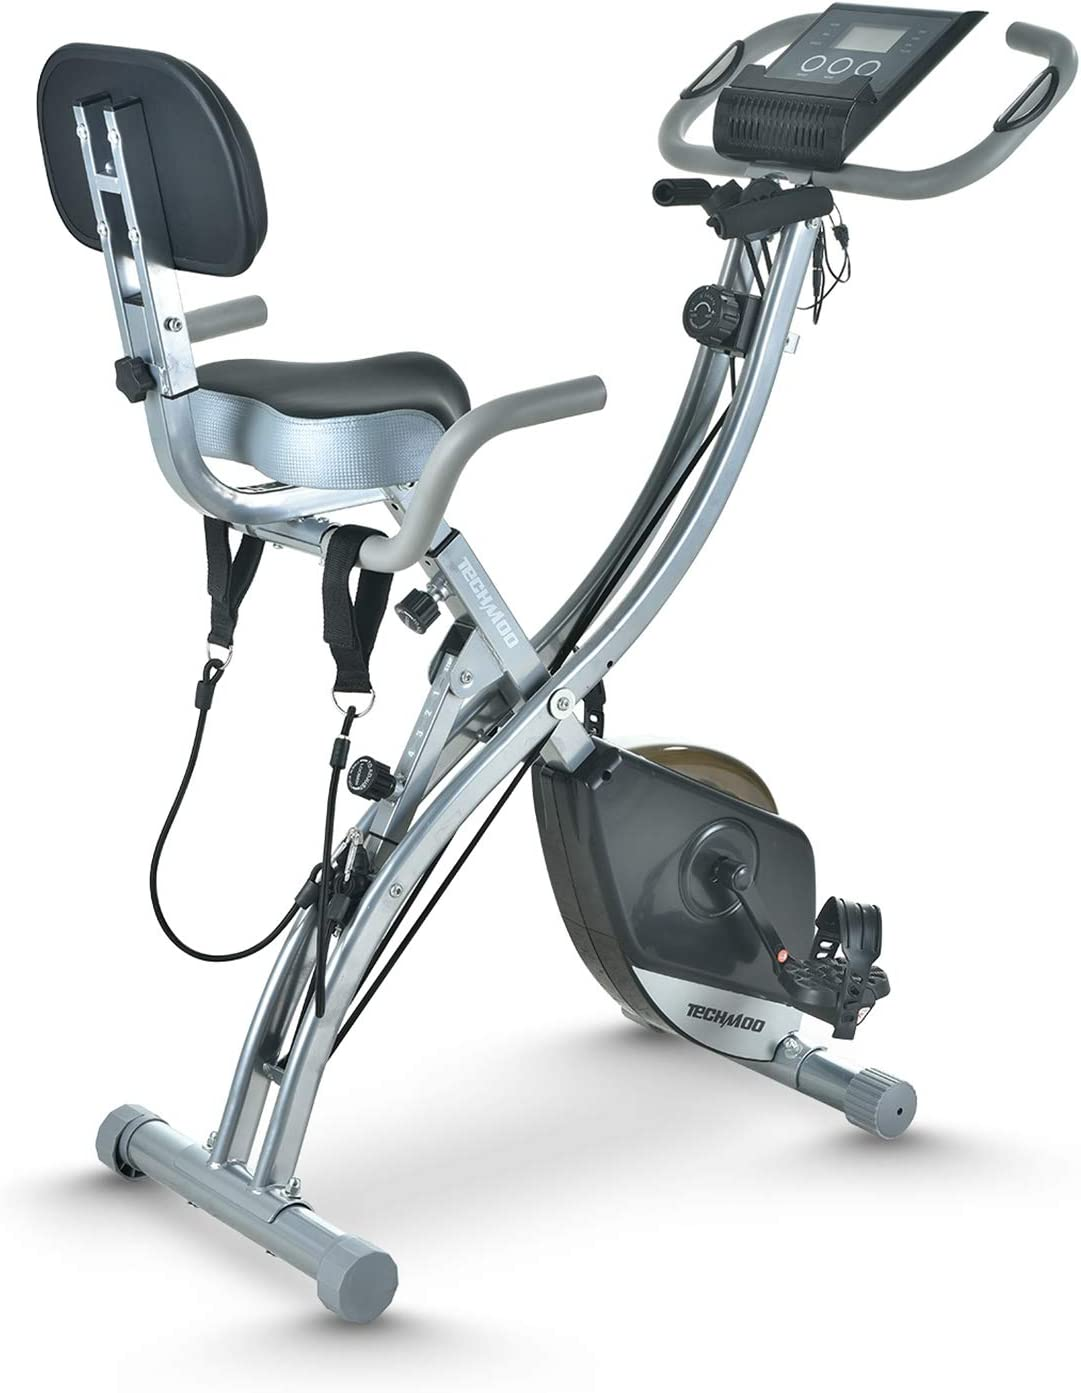 TECHMOO Folding Magnetic Stationary Exercise Bike Upright Recumbent Exercise Bike Folding Fitness Home X Exercise Bike Indoor Cycling Bike Bicycle for Workout Machine Cardio Workout Losing Weight